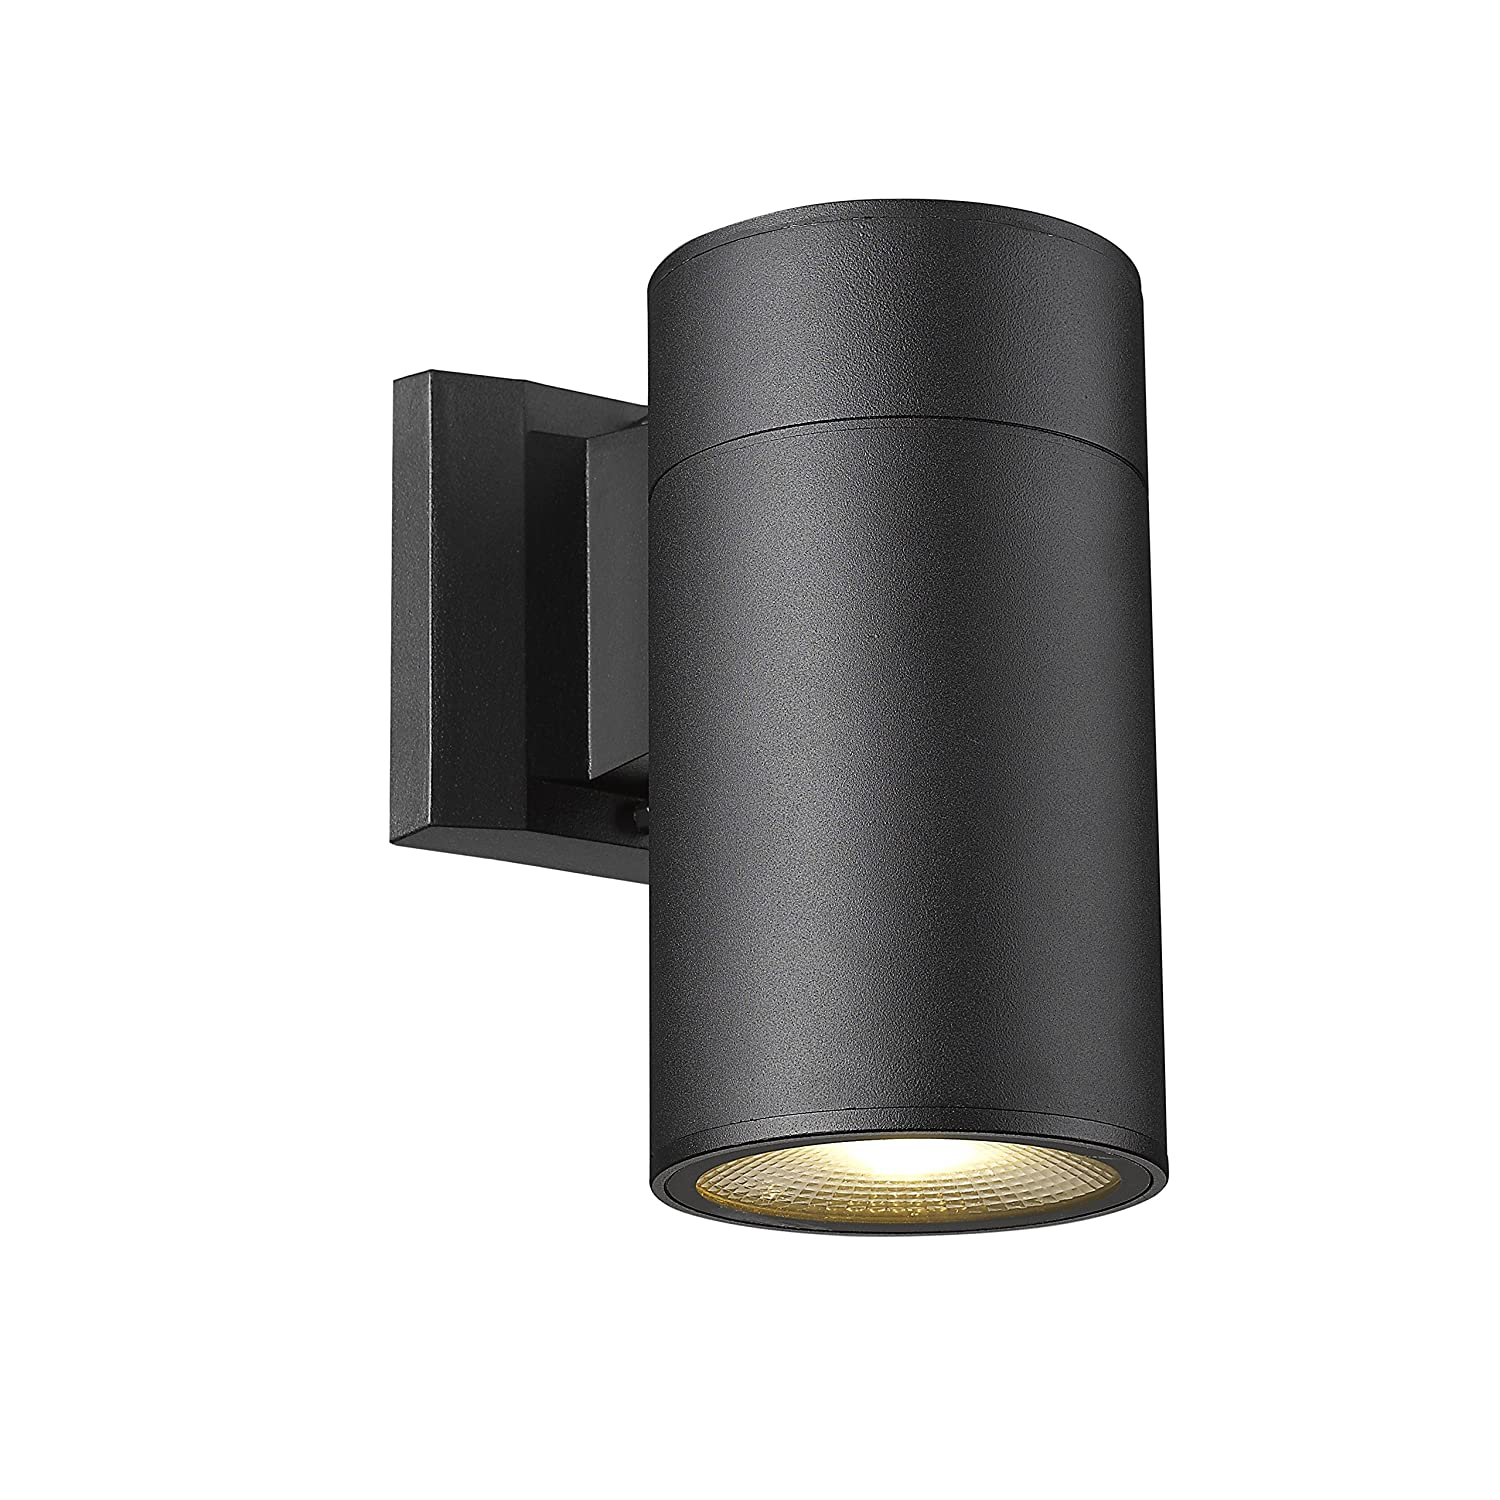 Down Light Black Finish Outdoor Wall Sconce FLALINKO Aluminum LED Wall Light 8W Super Bright Warm White for Garden Patio Exterior Corridor Cylinder - One Light 8-Inch Height